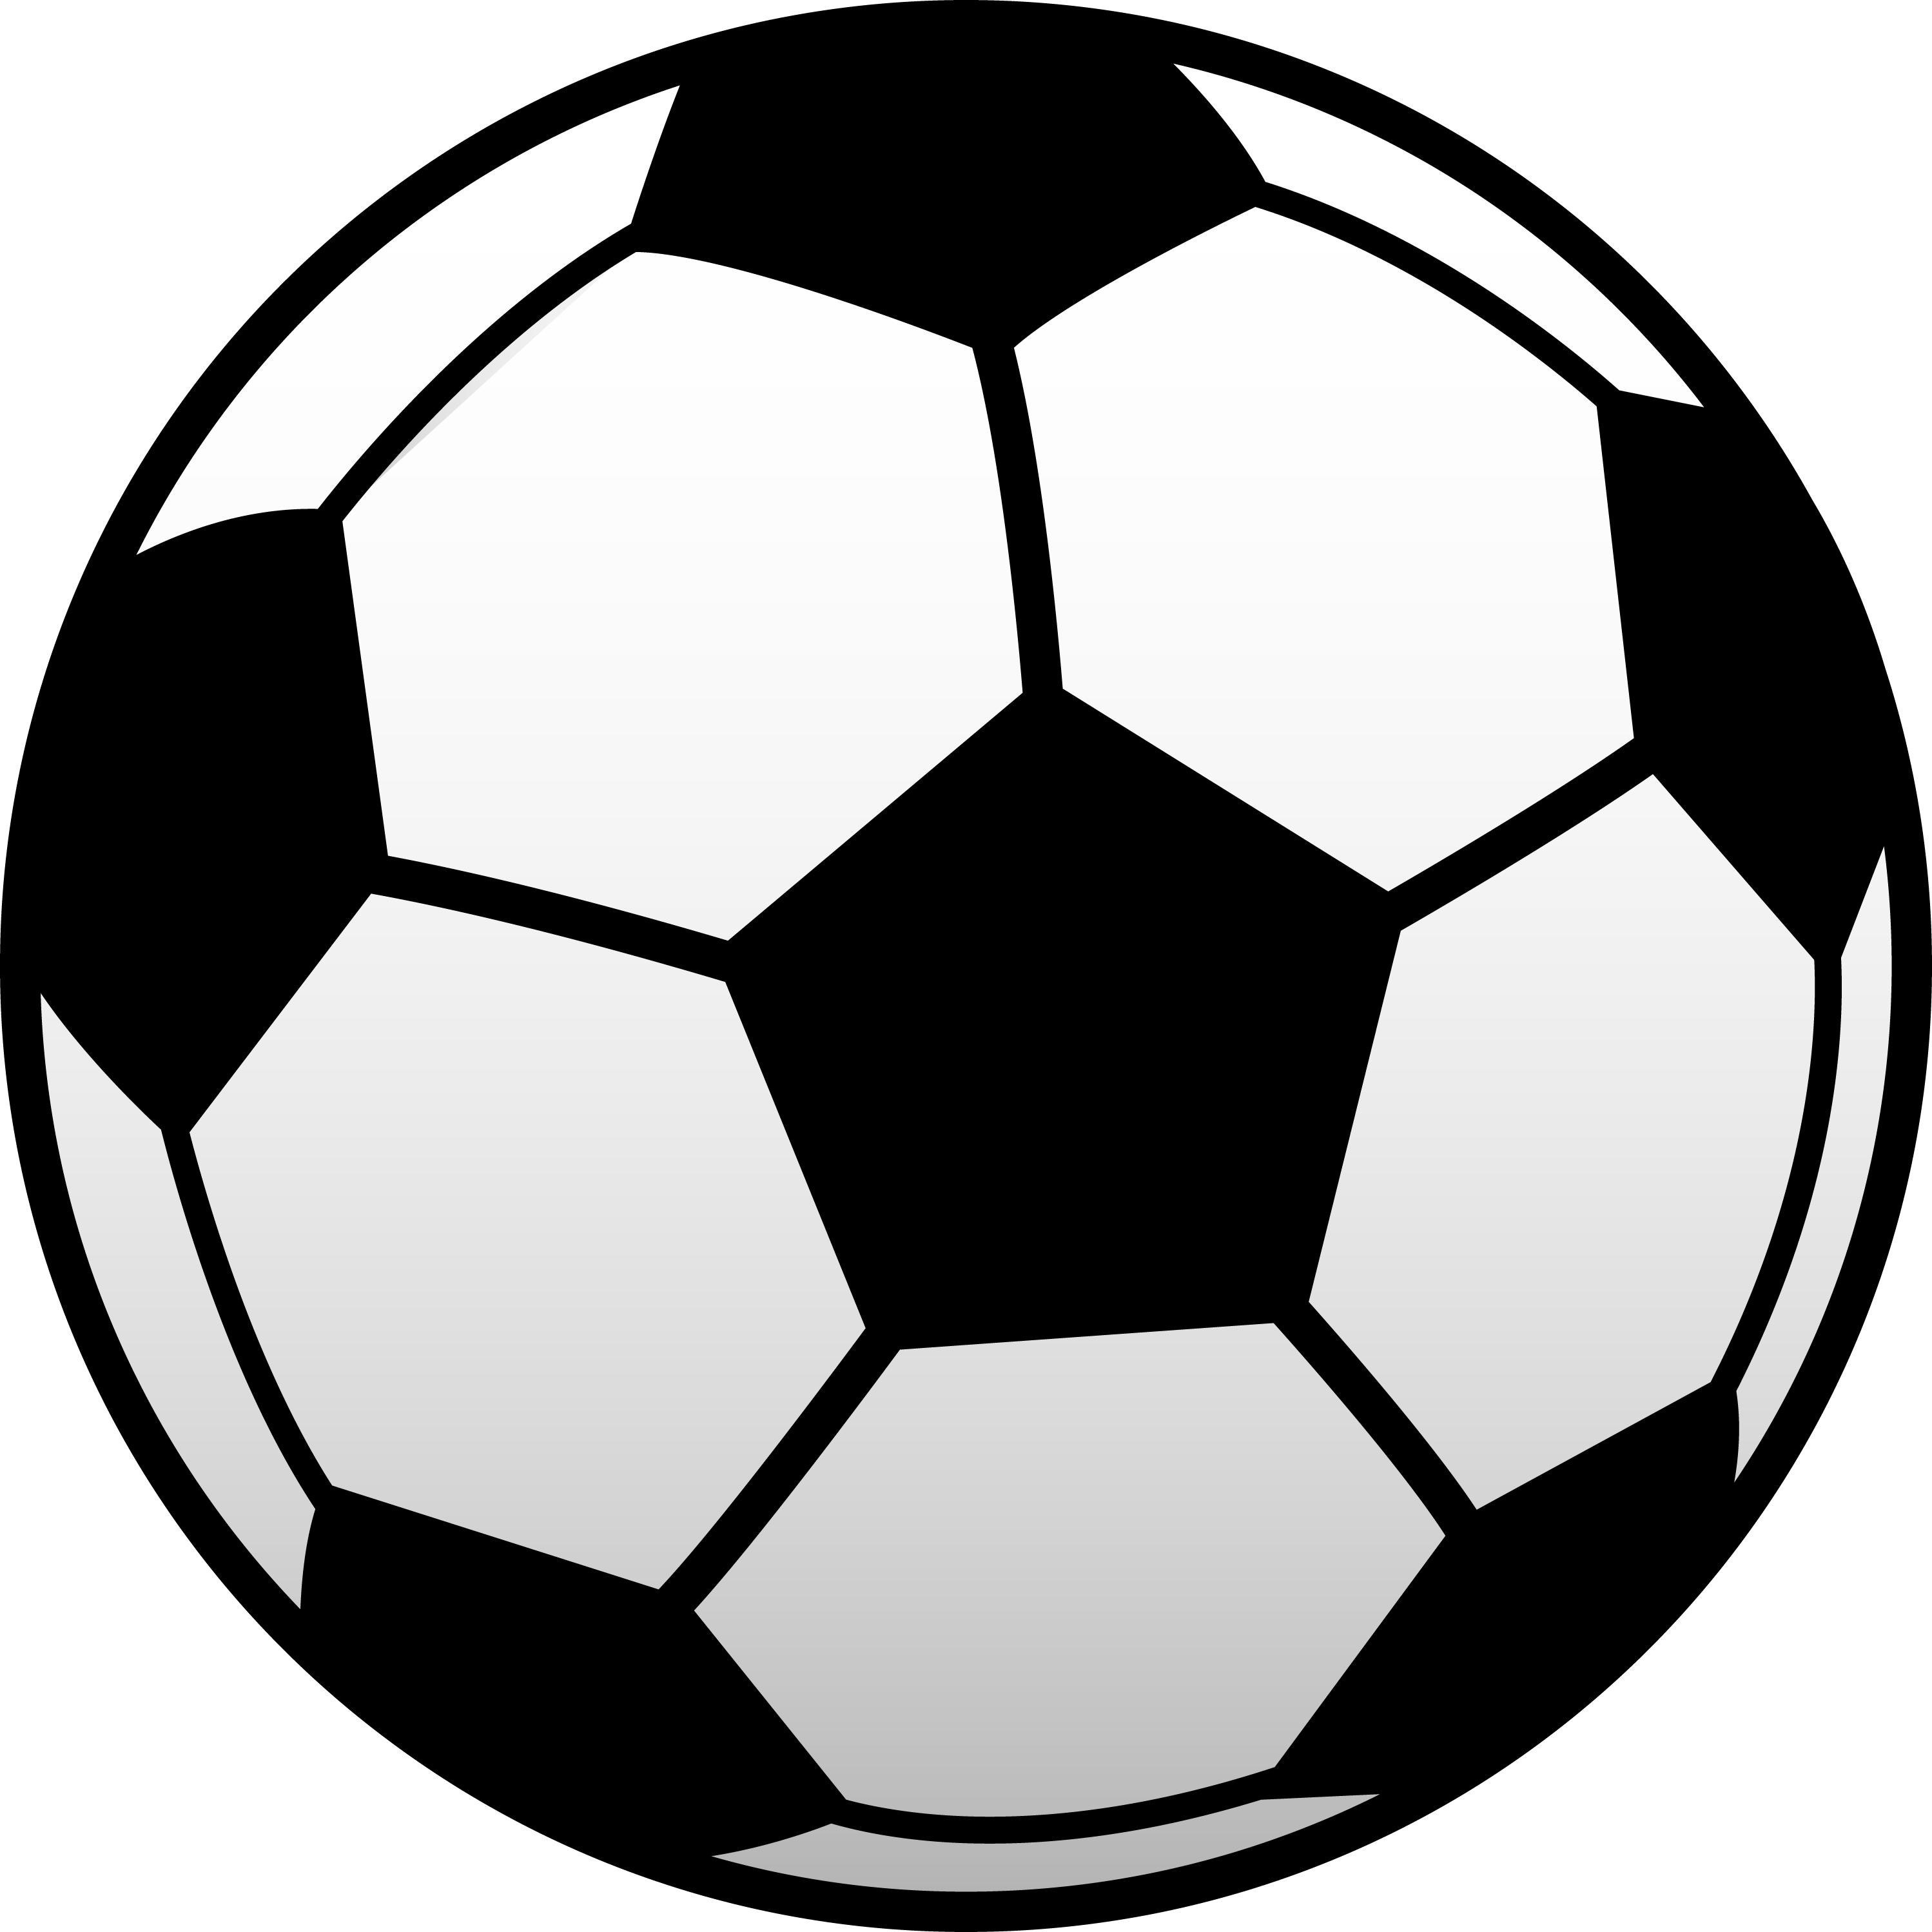 Download Soccer Ball Clip Art High Definition Free Images For Your Pc Or Personal Media Storage Browse More Soccer Ball Clip Soccer Ball Soccer Free Clip Art